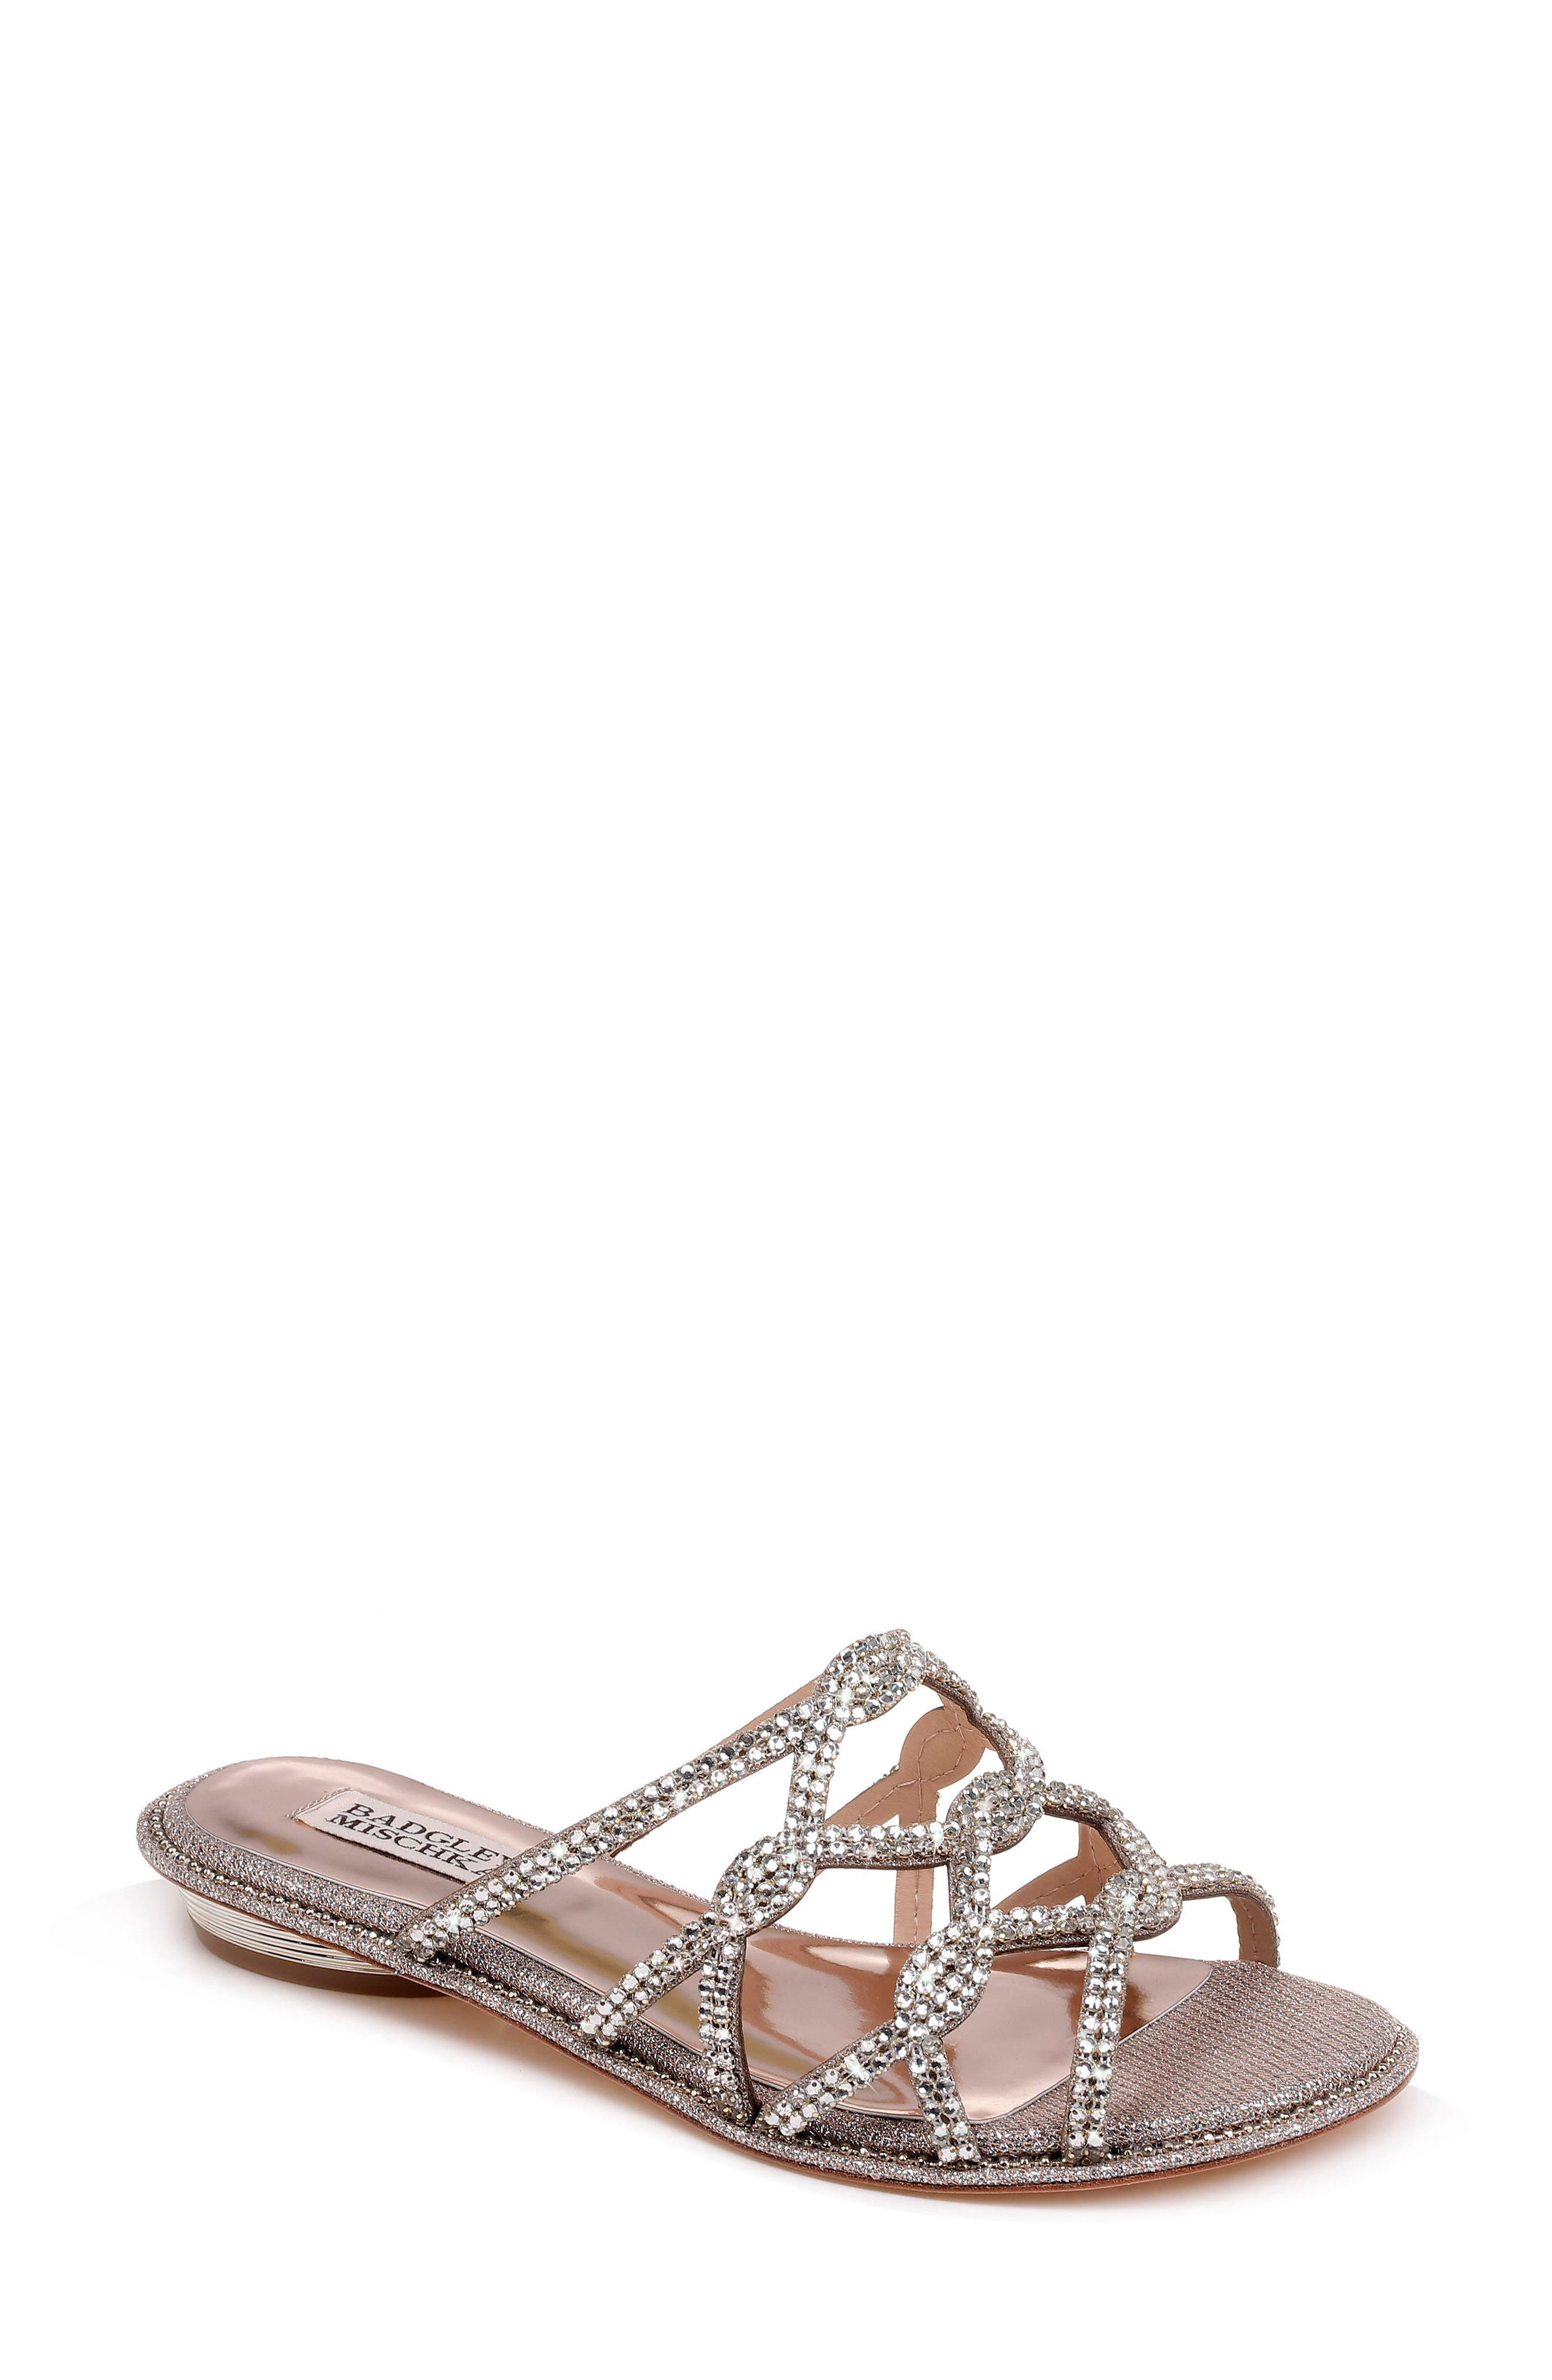 Badgley Mischka Sofie Strappy Sandal (Women)